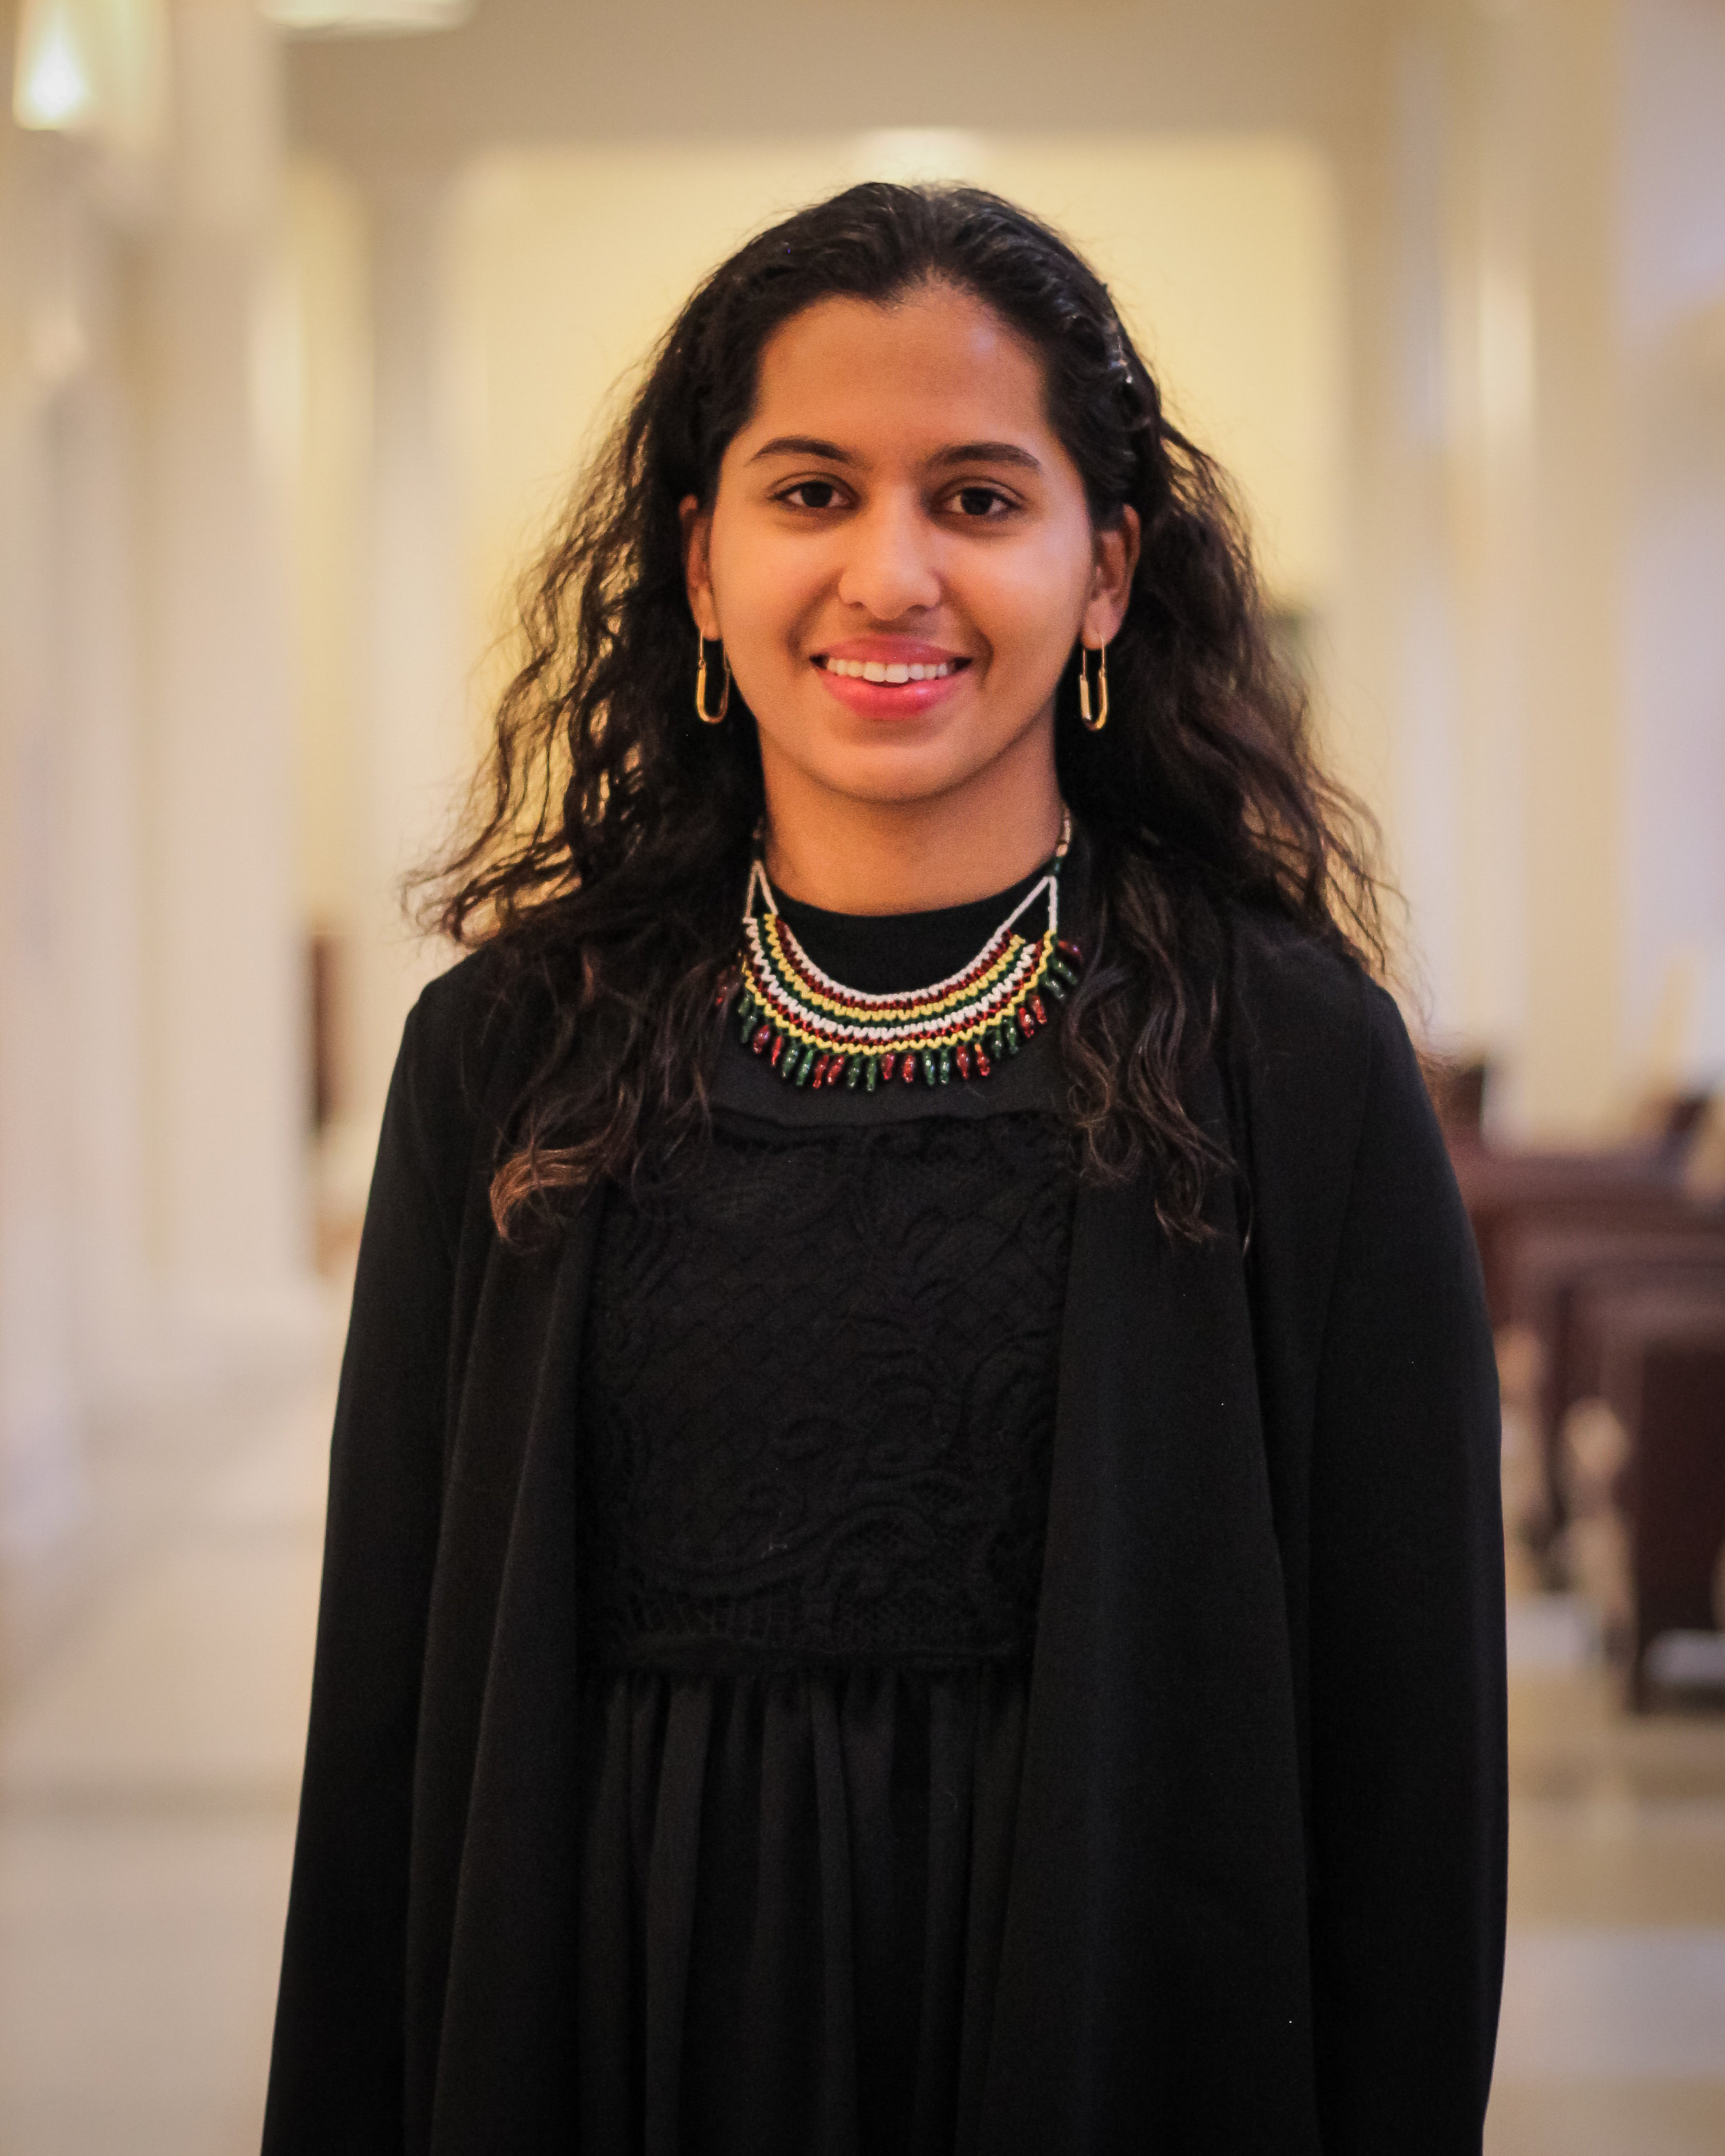 Shivani Gupta is Senior at the College completing her BA in Public Policy, with a minor in Global Education. She is the Director of External Relations for this year's WMGIC. In Spring 2018, she studied abroad in Jaipur, India through a program on Sustainable Development & Social Change, during which she conducted an independent study of the relationship between empowerment and education for marginalized girls at Prerna School for Girls. This past Winter Break, she was fortunate to help break ground on a primary school in Nepal in partnership with buildOn with a team of W&M students. Her career aspirations include addressing education inequity abroad and working in the field of international development upon graduation.